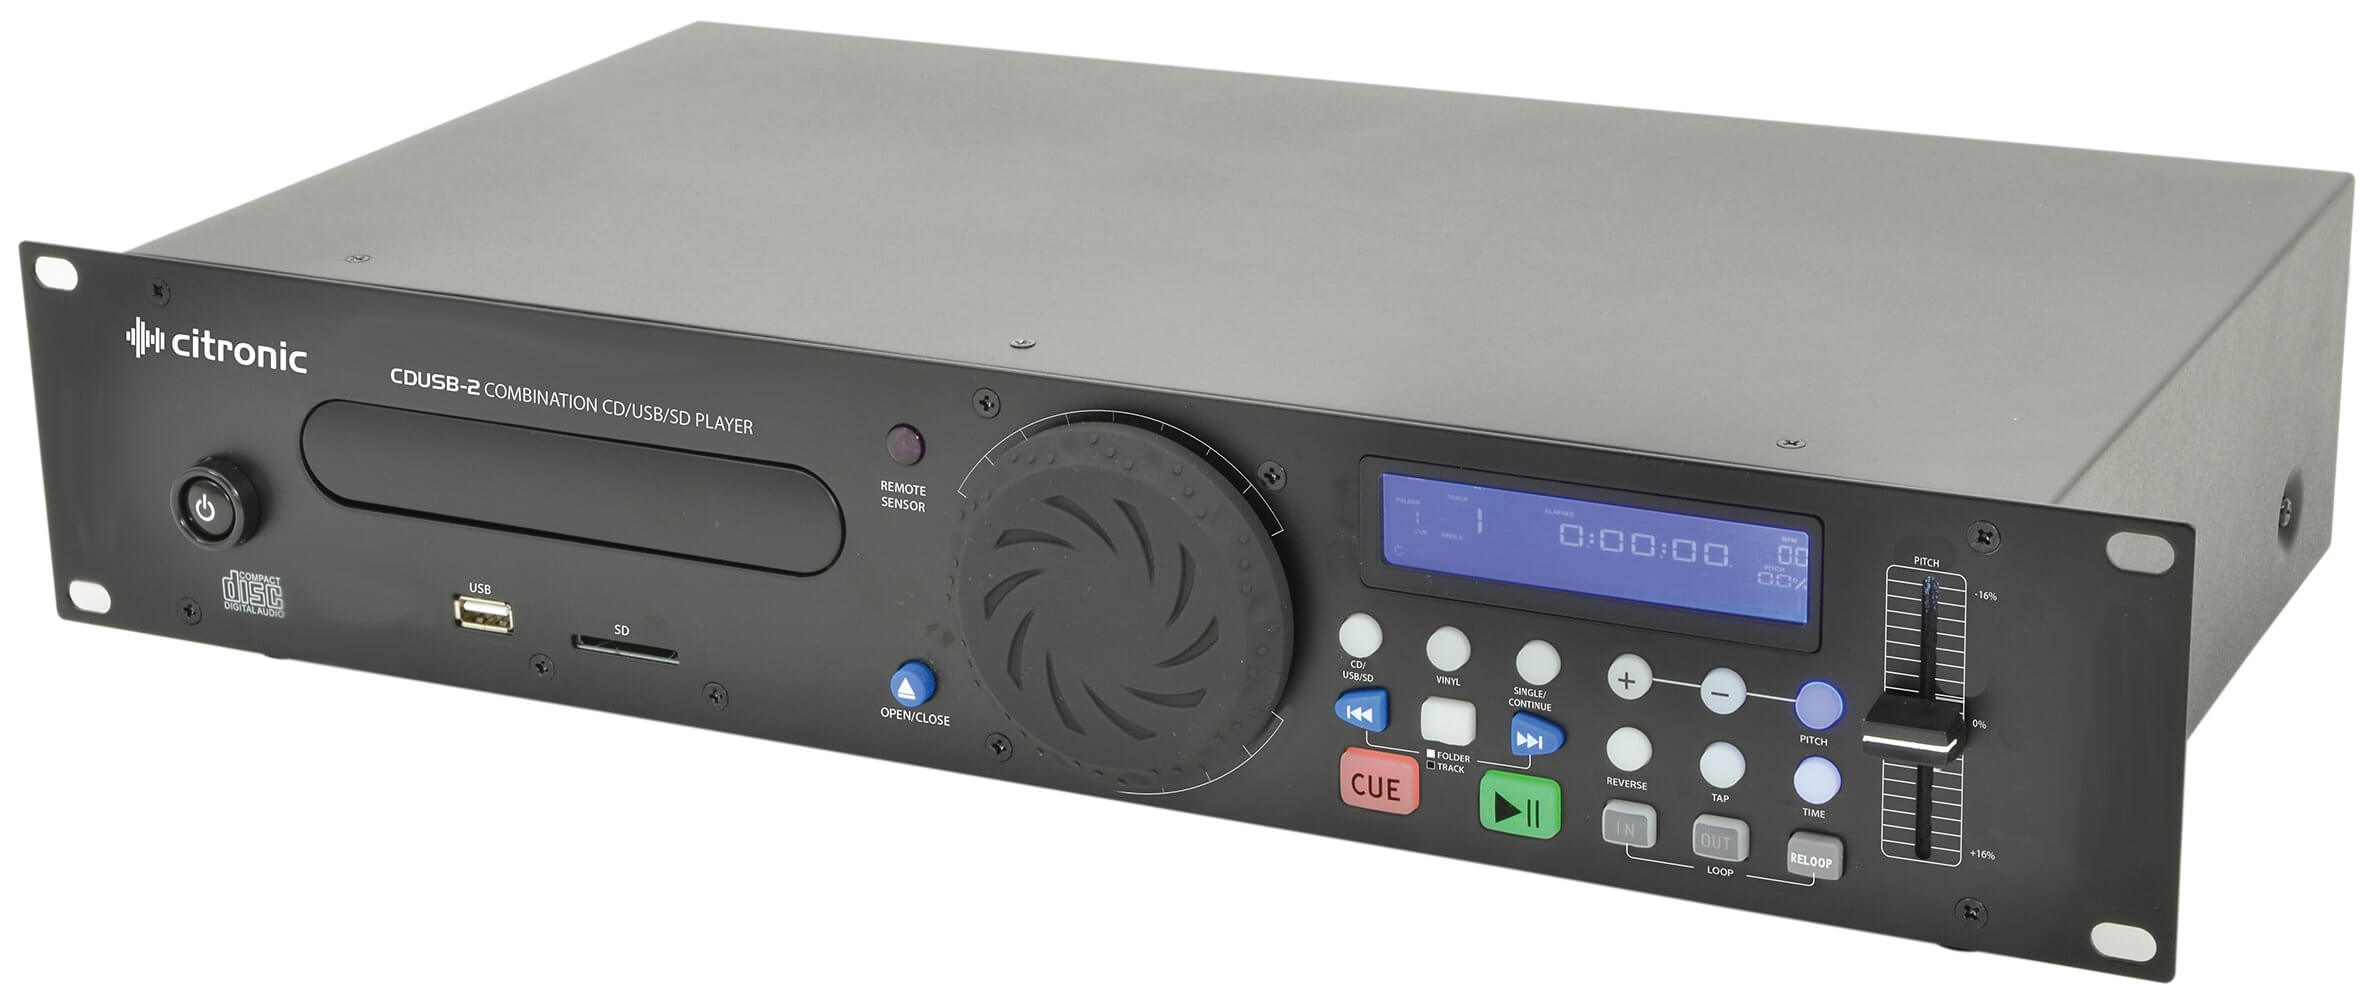 Citronic CDUSB-2 Single CD Player USB SD Rack